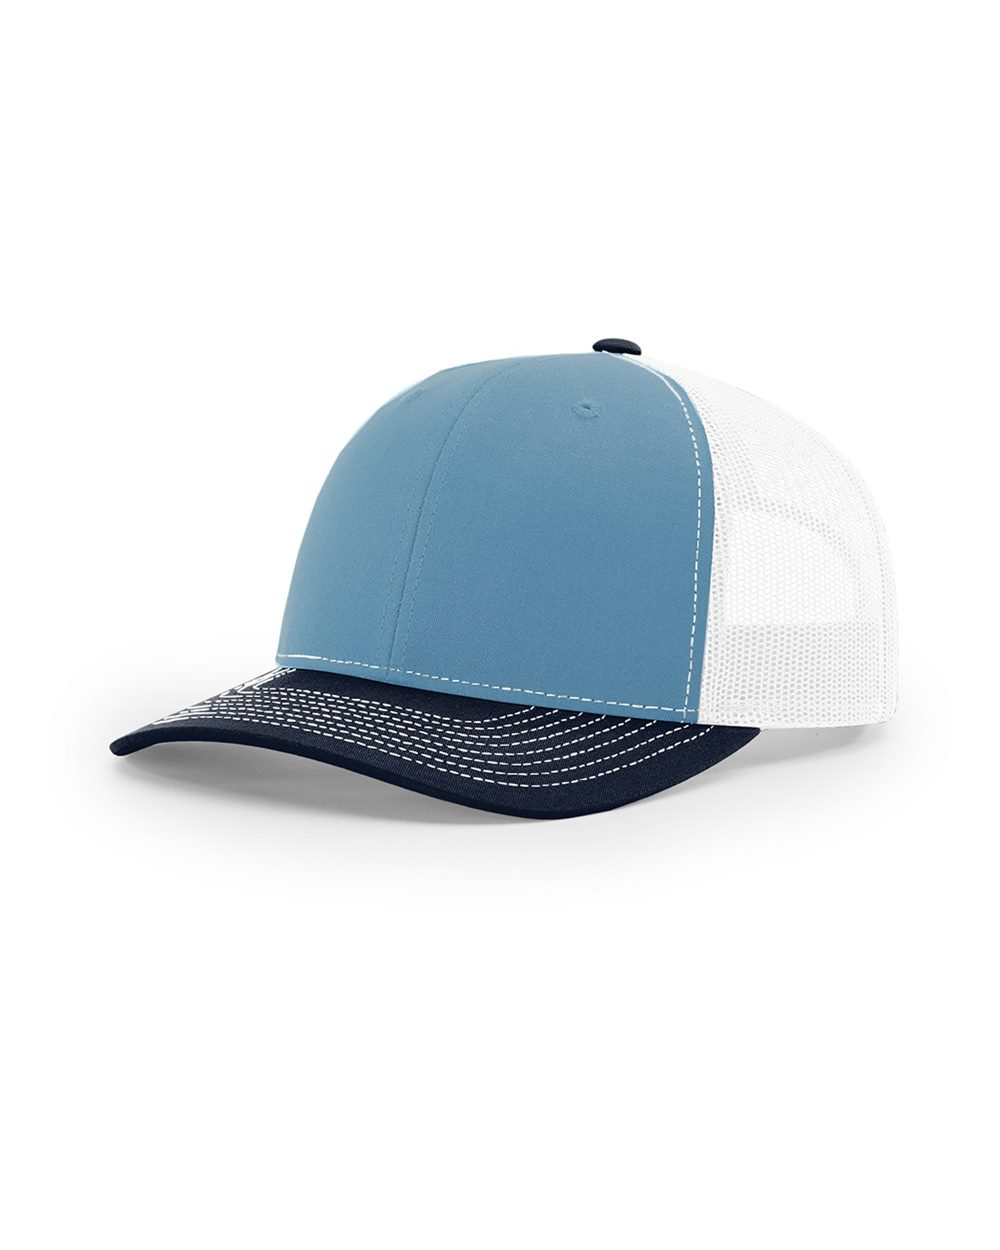 Colombia Blue/ White/ Navy